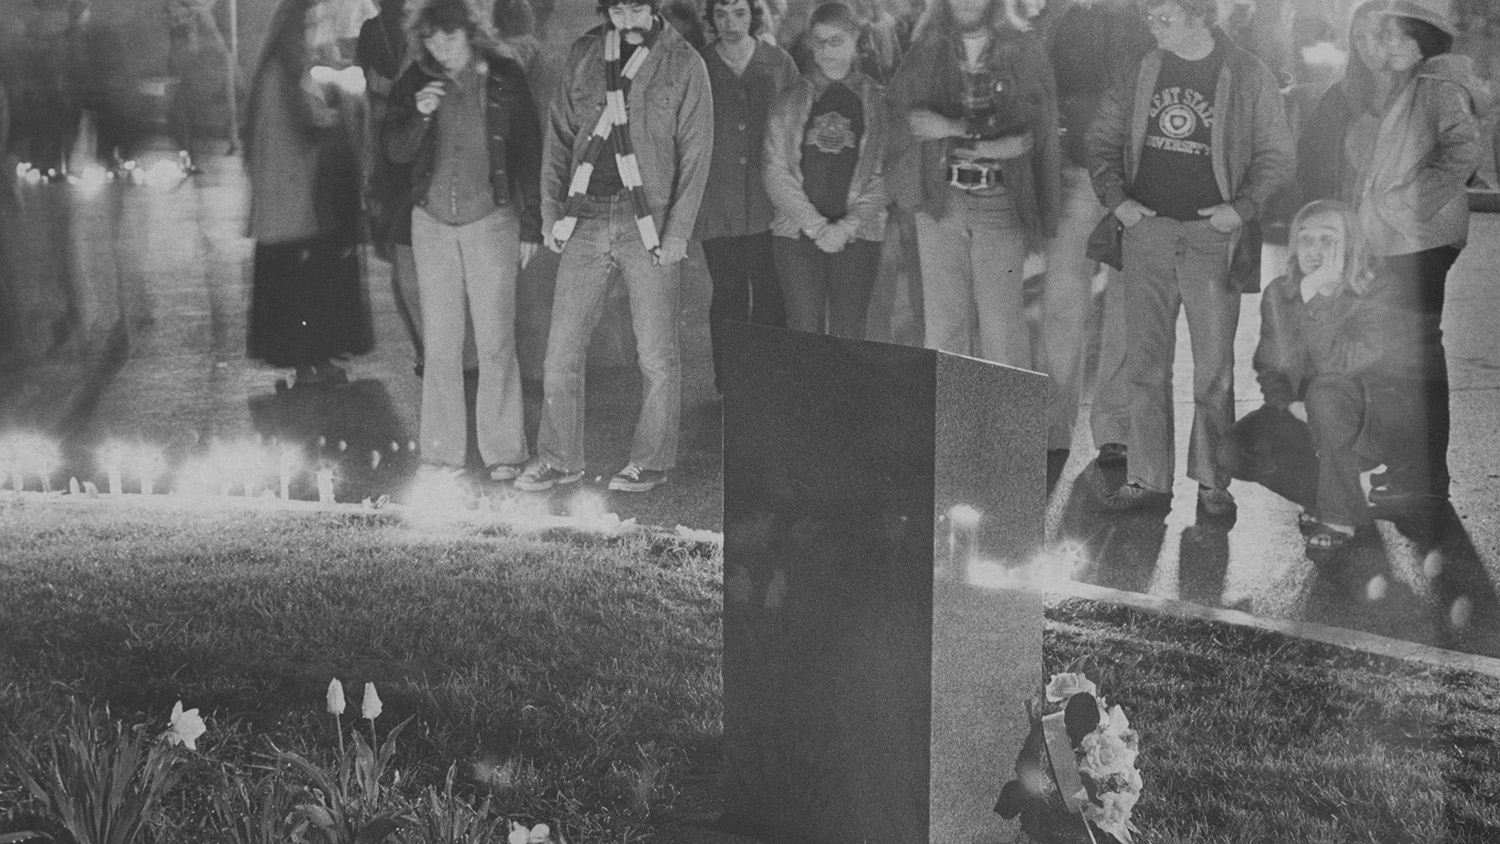 Kent State Shootings: Oral Histories